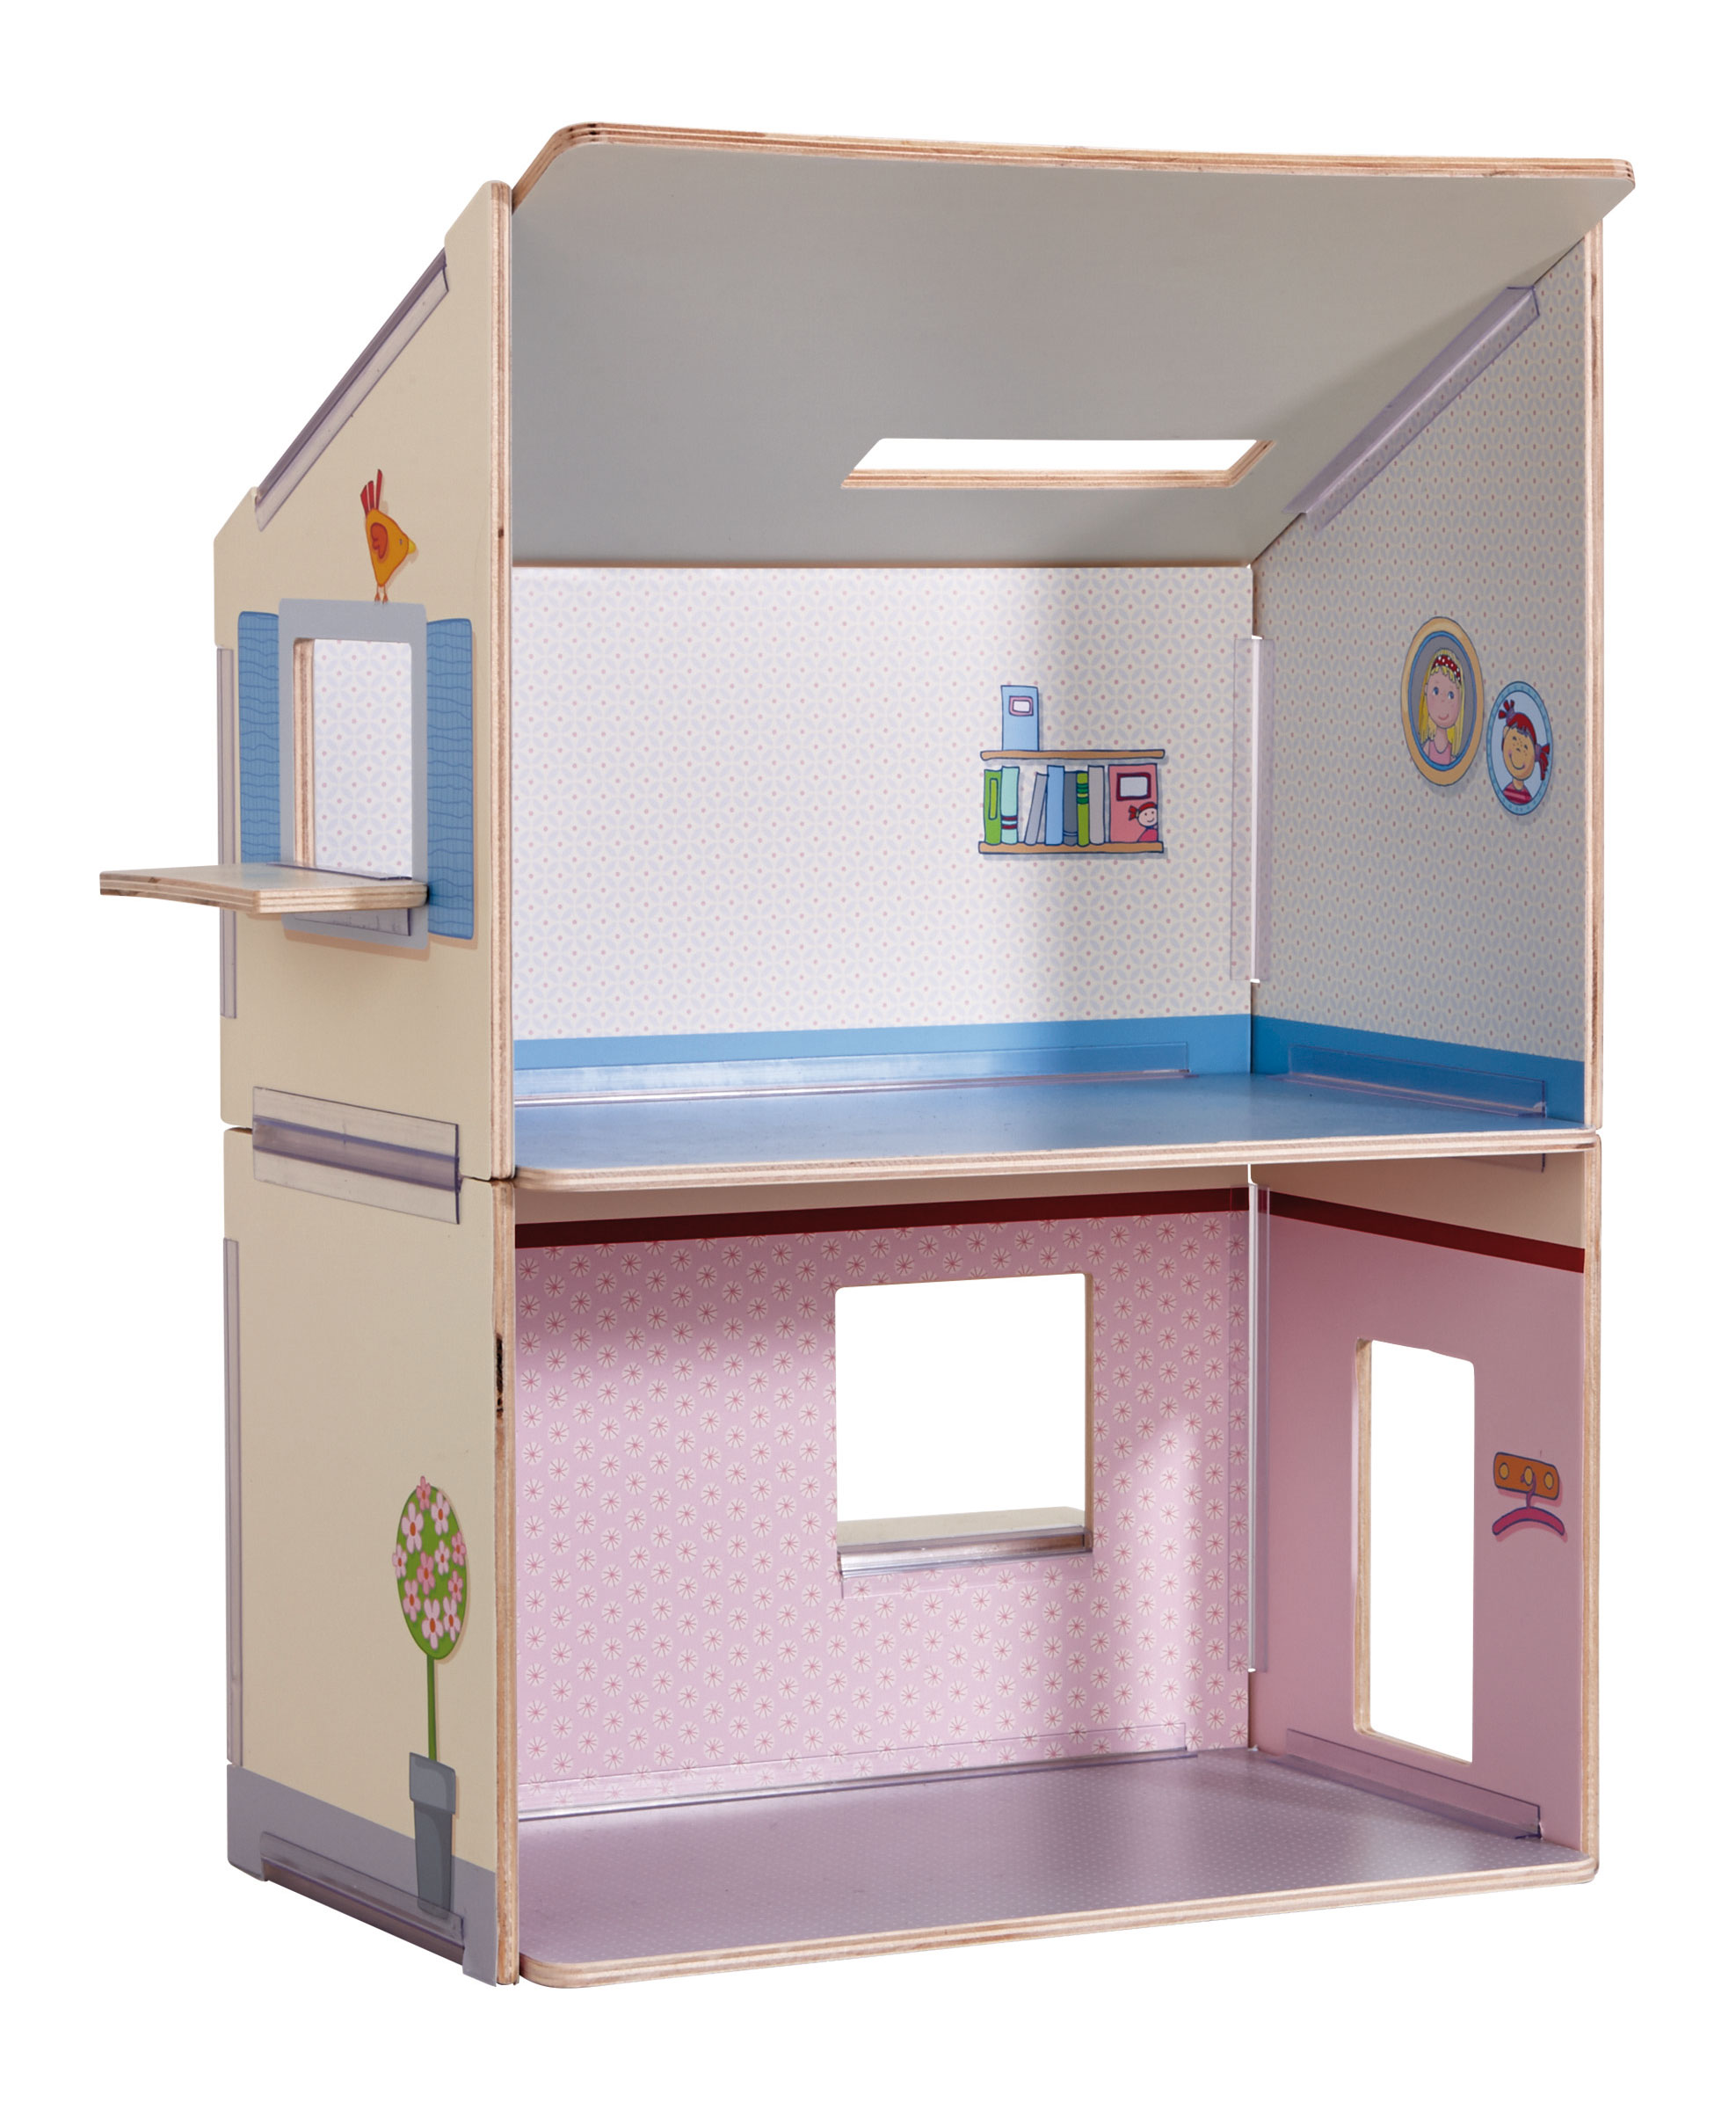 haba puppenhaus traumhaus little friends g nstig kaufen im online shop. Black Bedroom Furniture Sets. Home Design Ideas